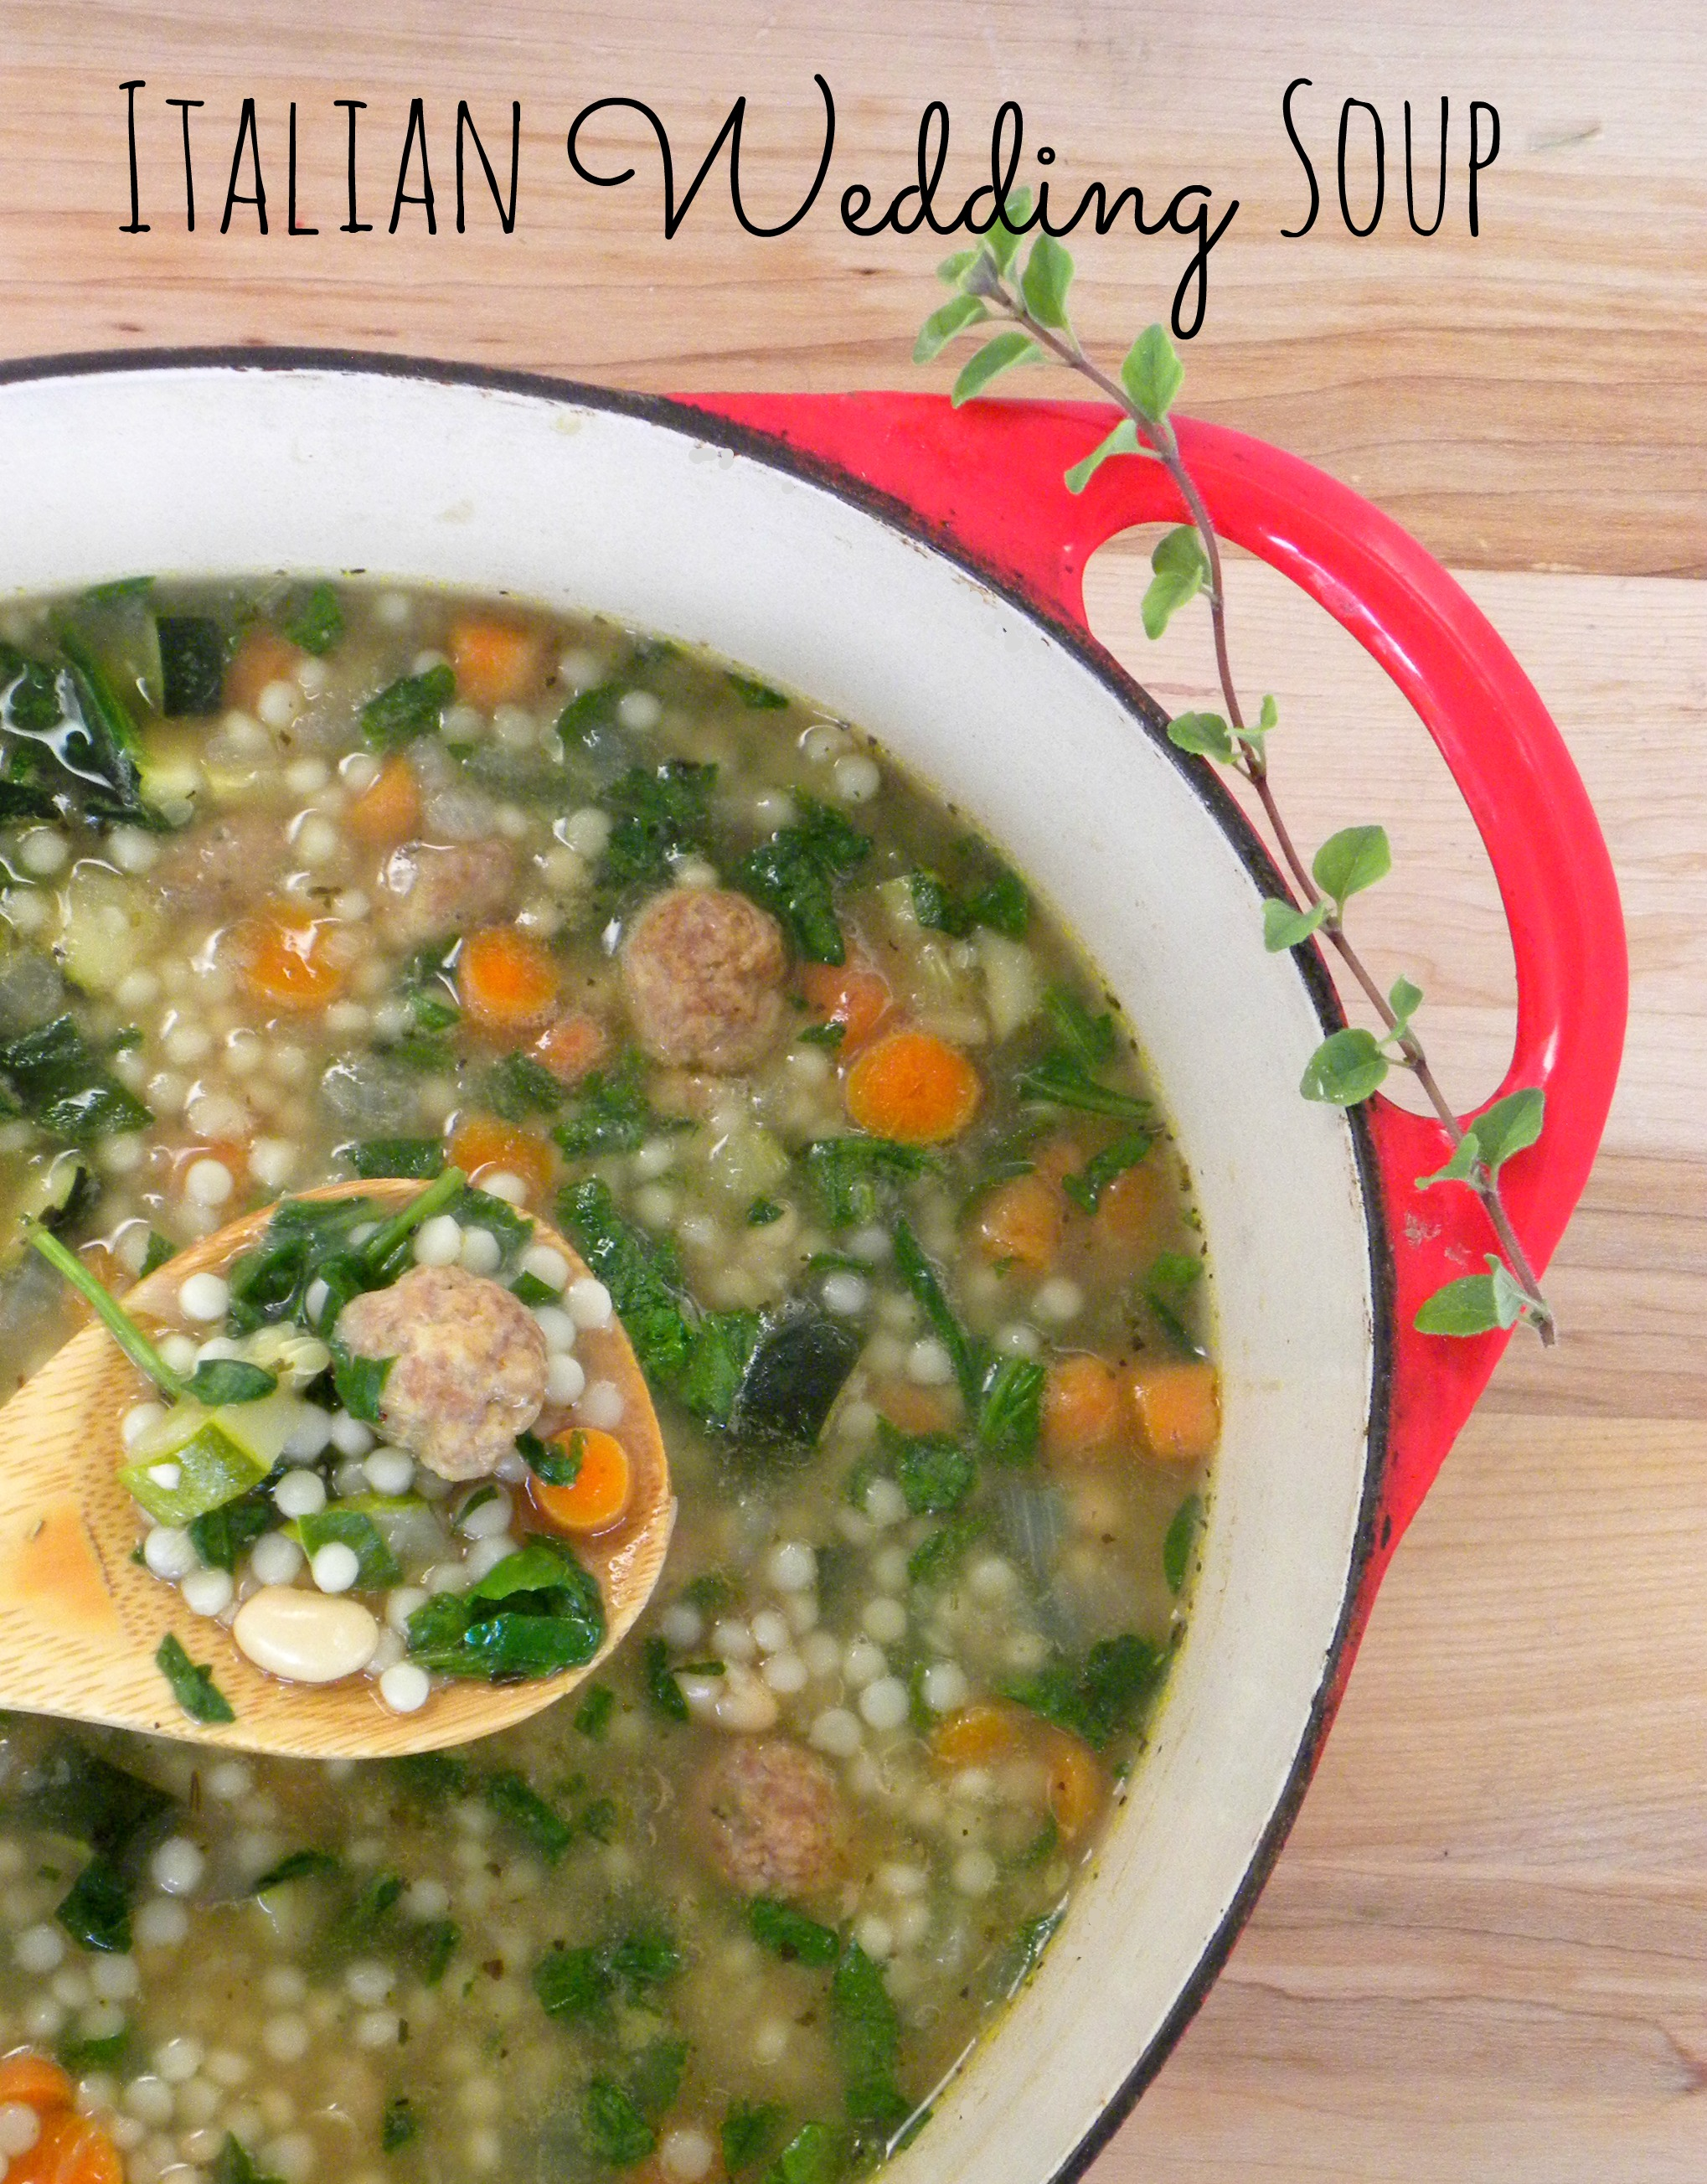 Italian Wedding Soup with Turkey Meatballs | KerryAnnMorgan.com